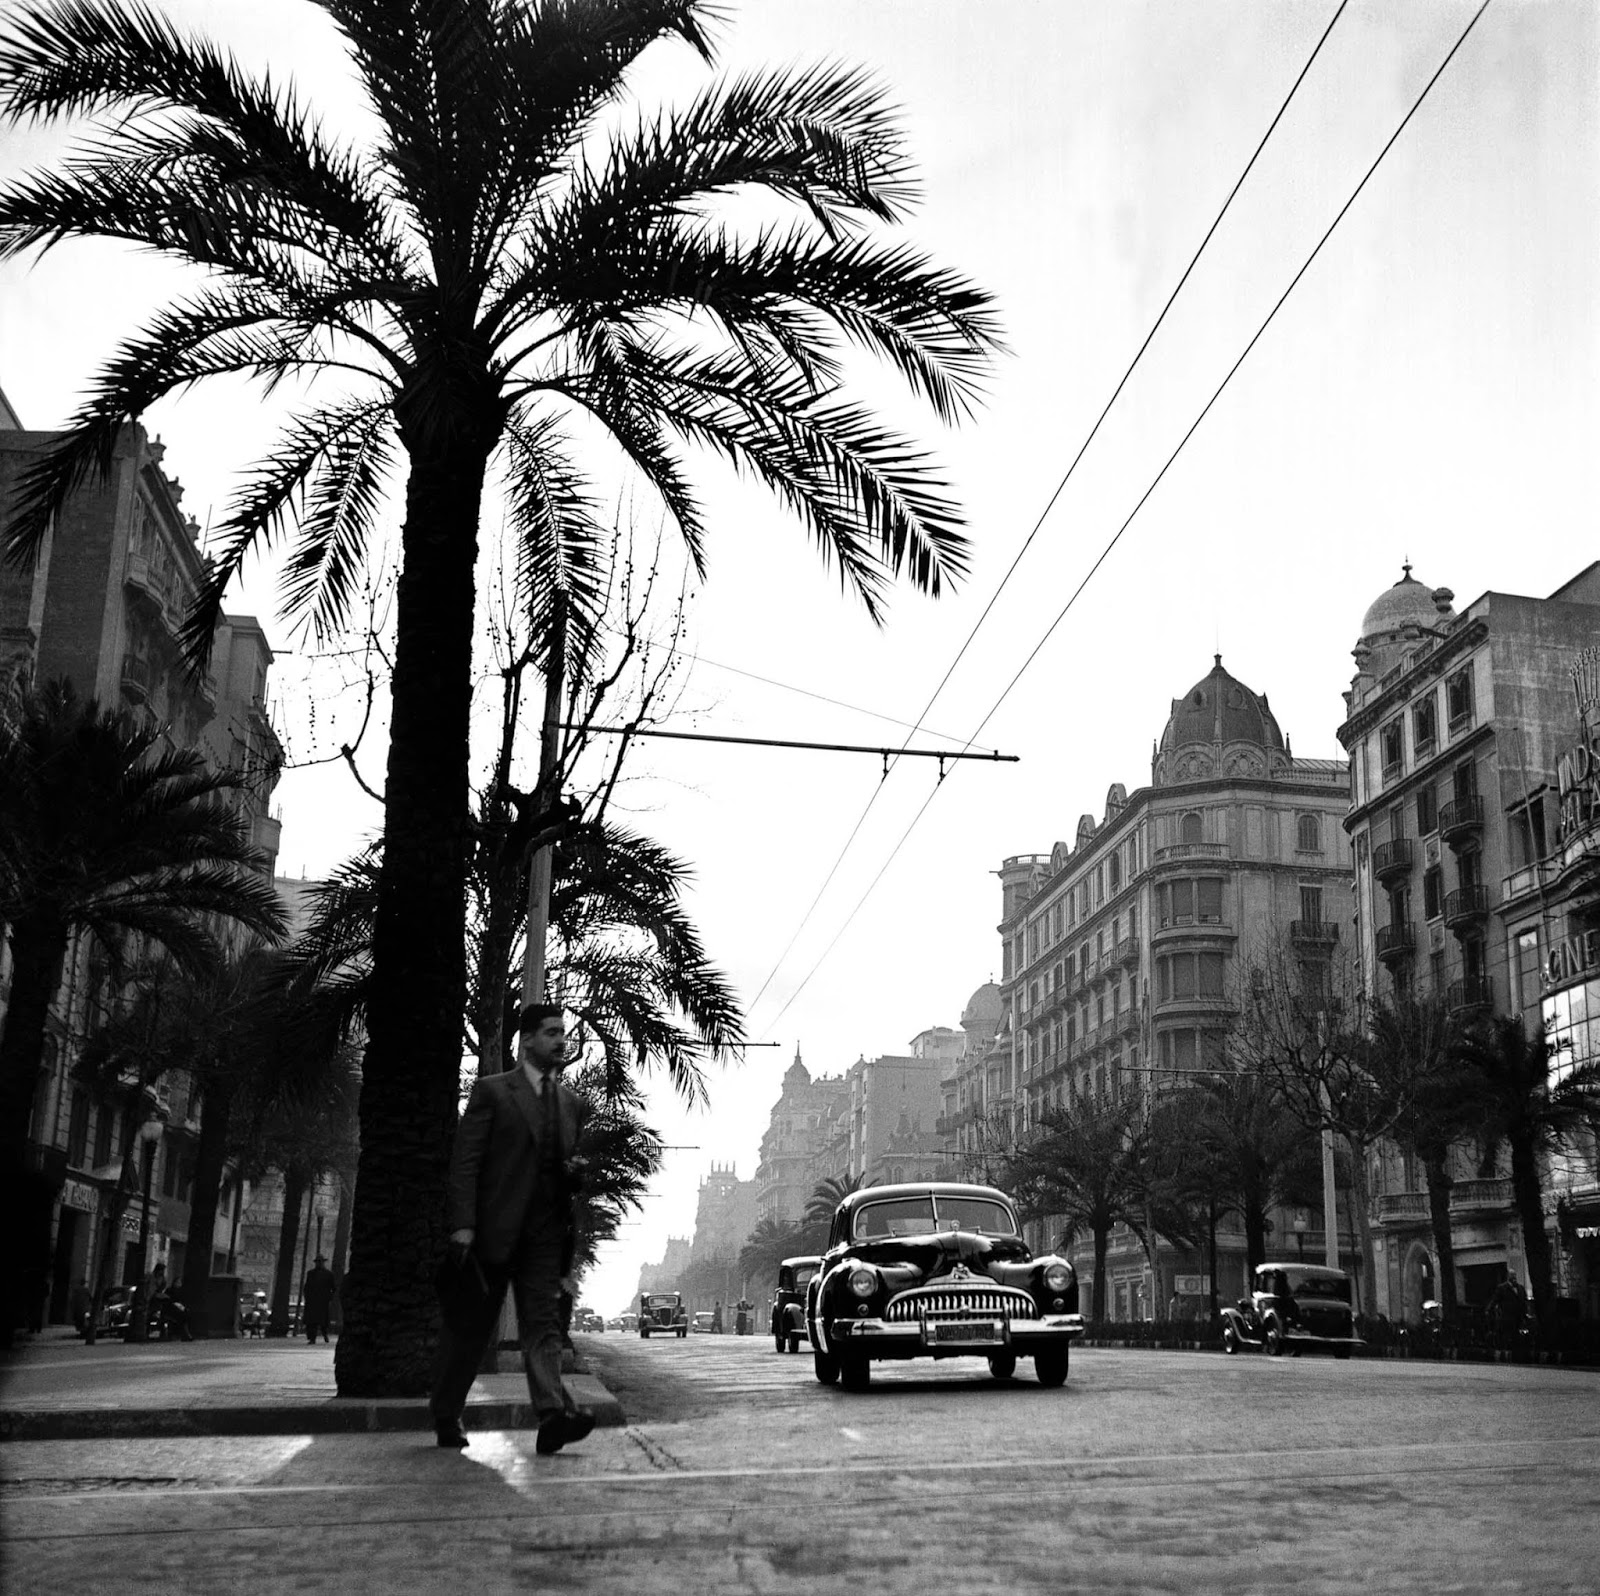 Below is a collection of amazing black and white photographs of madrid and barcelona of the 1950s taken by francesc català roca showing the street scenes